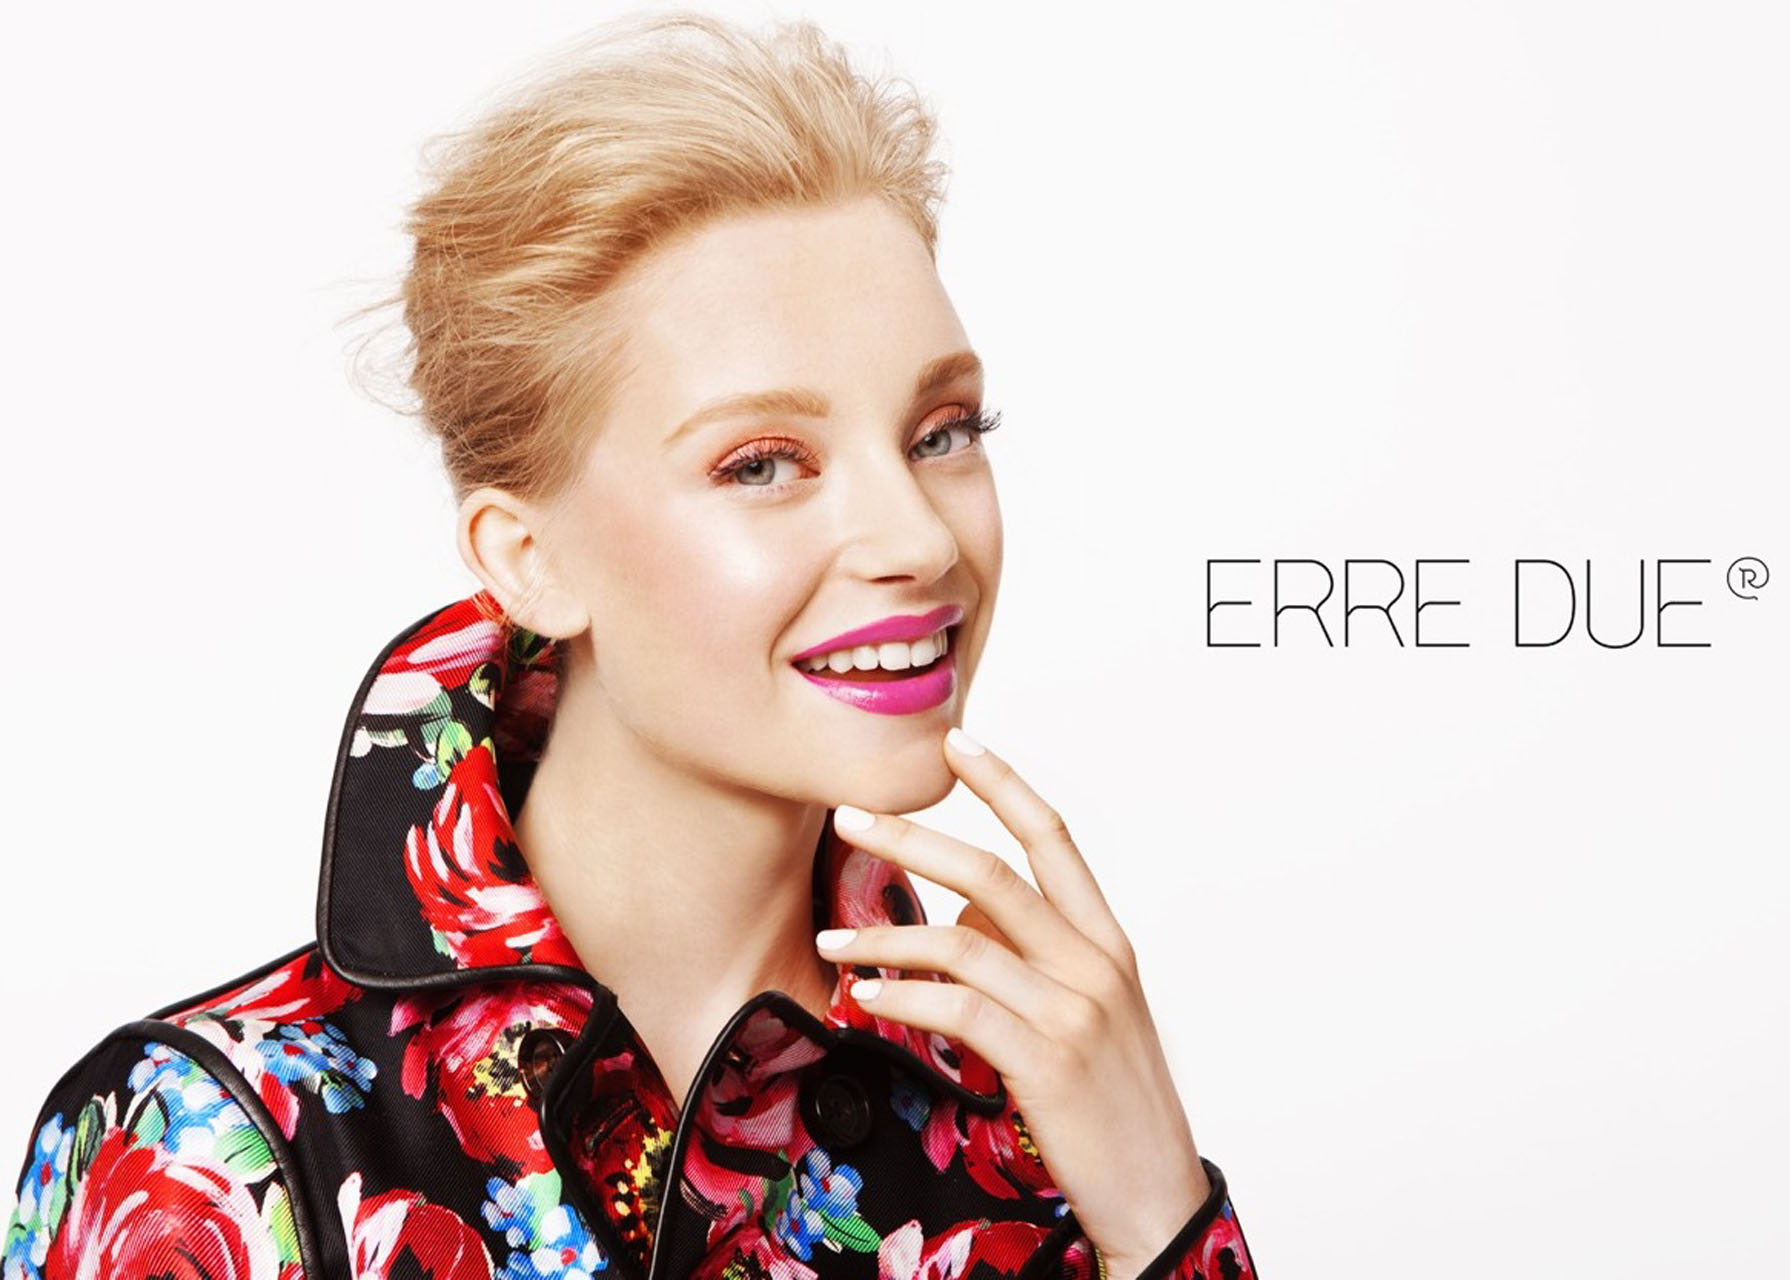 What a beauty! Jeske Van Der Pal is the face of Erre Due.